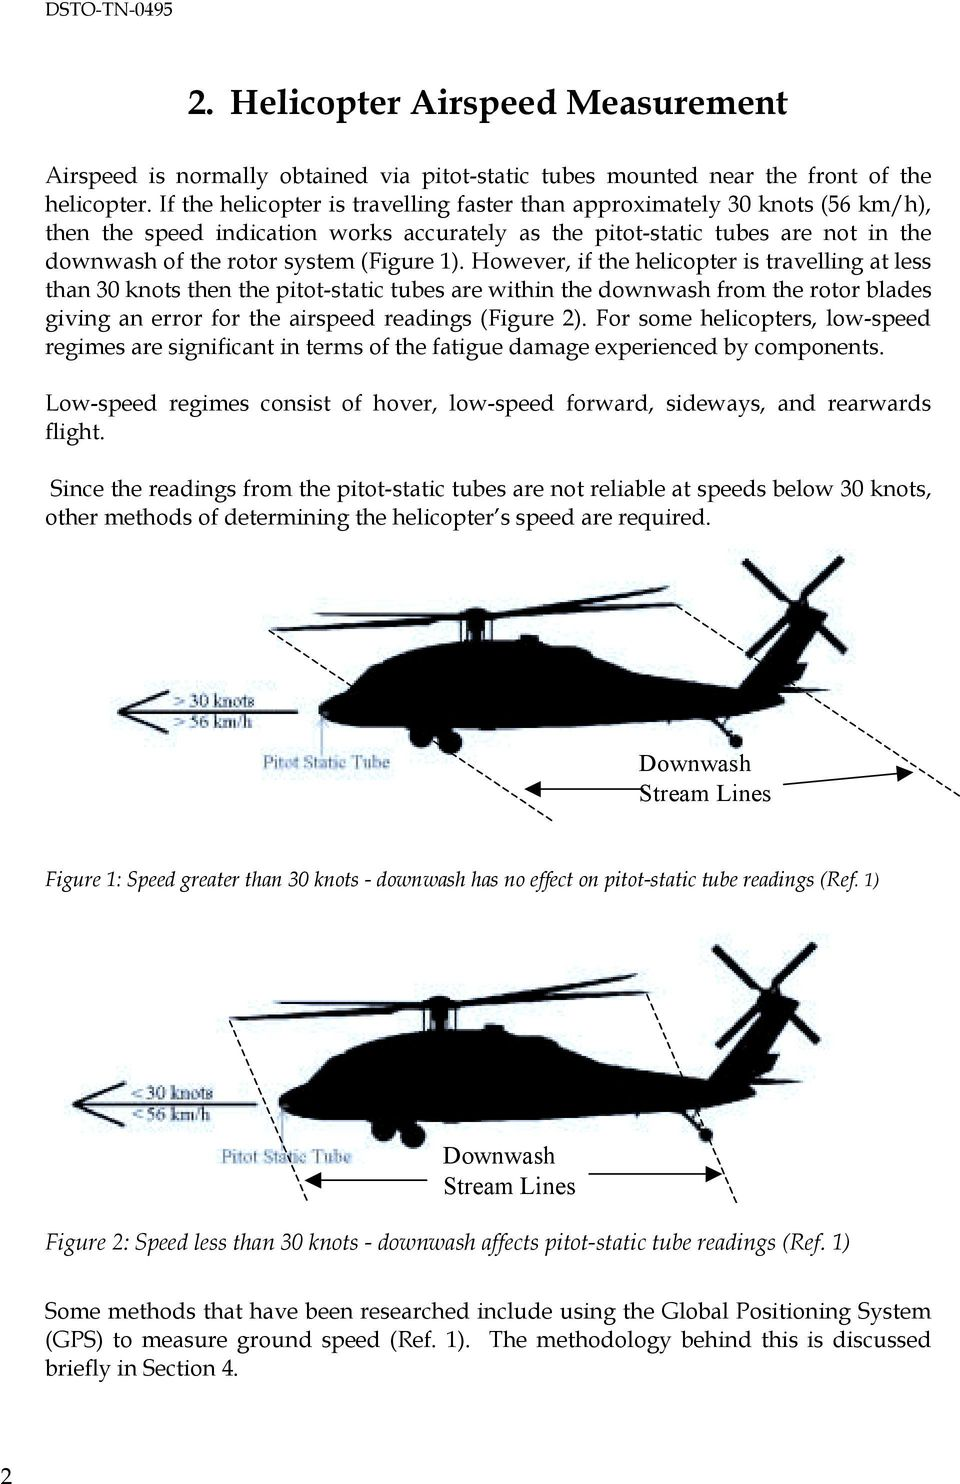 1). However, if the helicopter is travelling at less than 30 knots then the pitot-static tubes are within the downwash from the rotor blades giving an error for the airspeed readings (Figure 2).